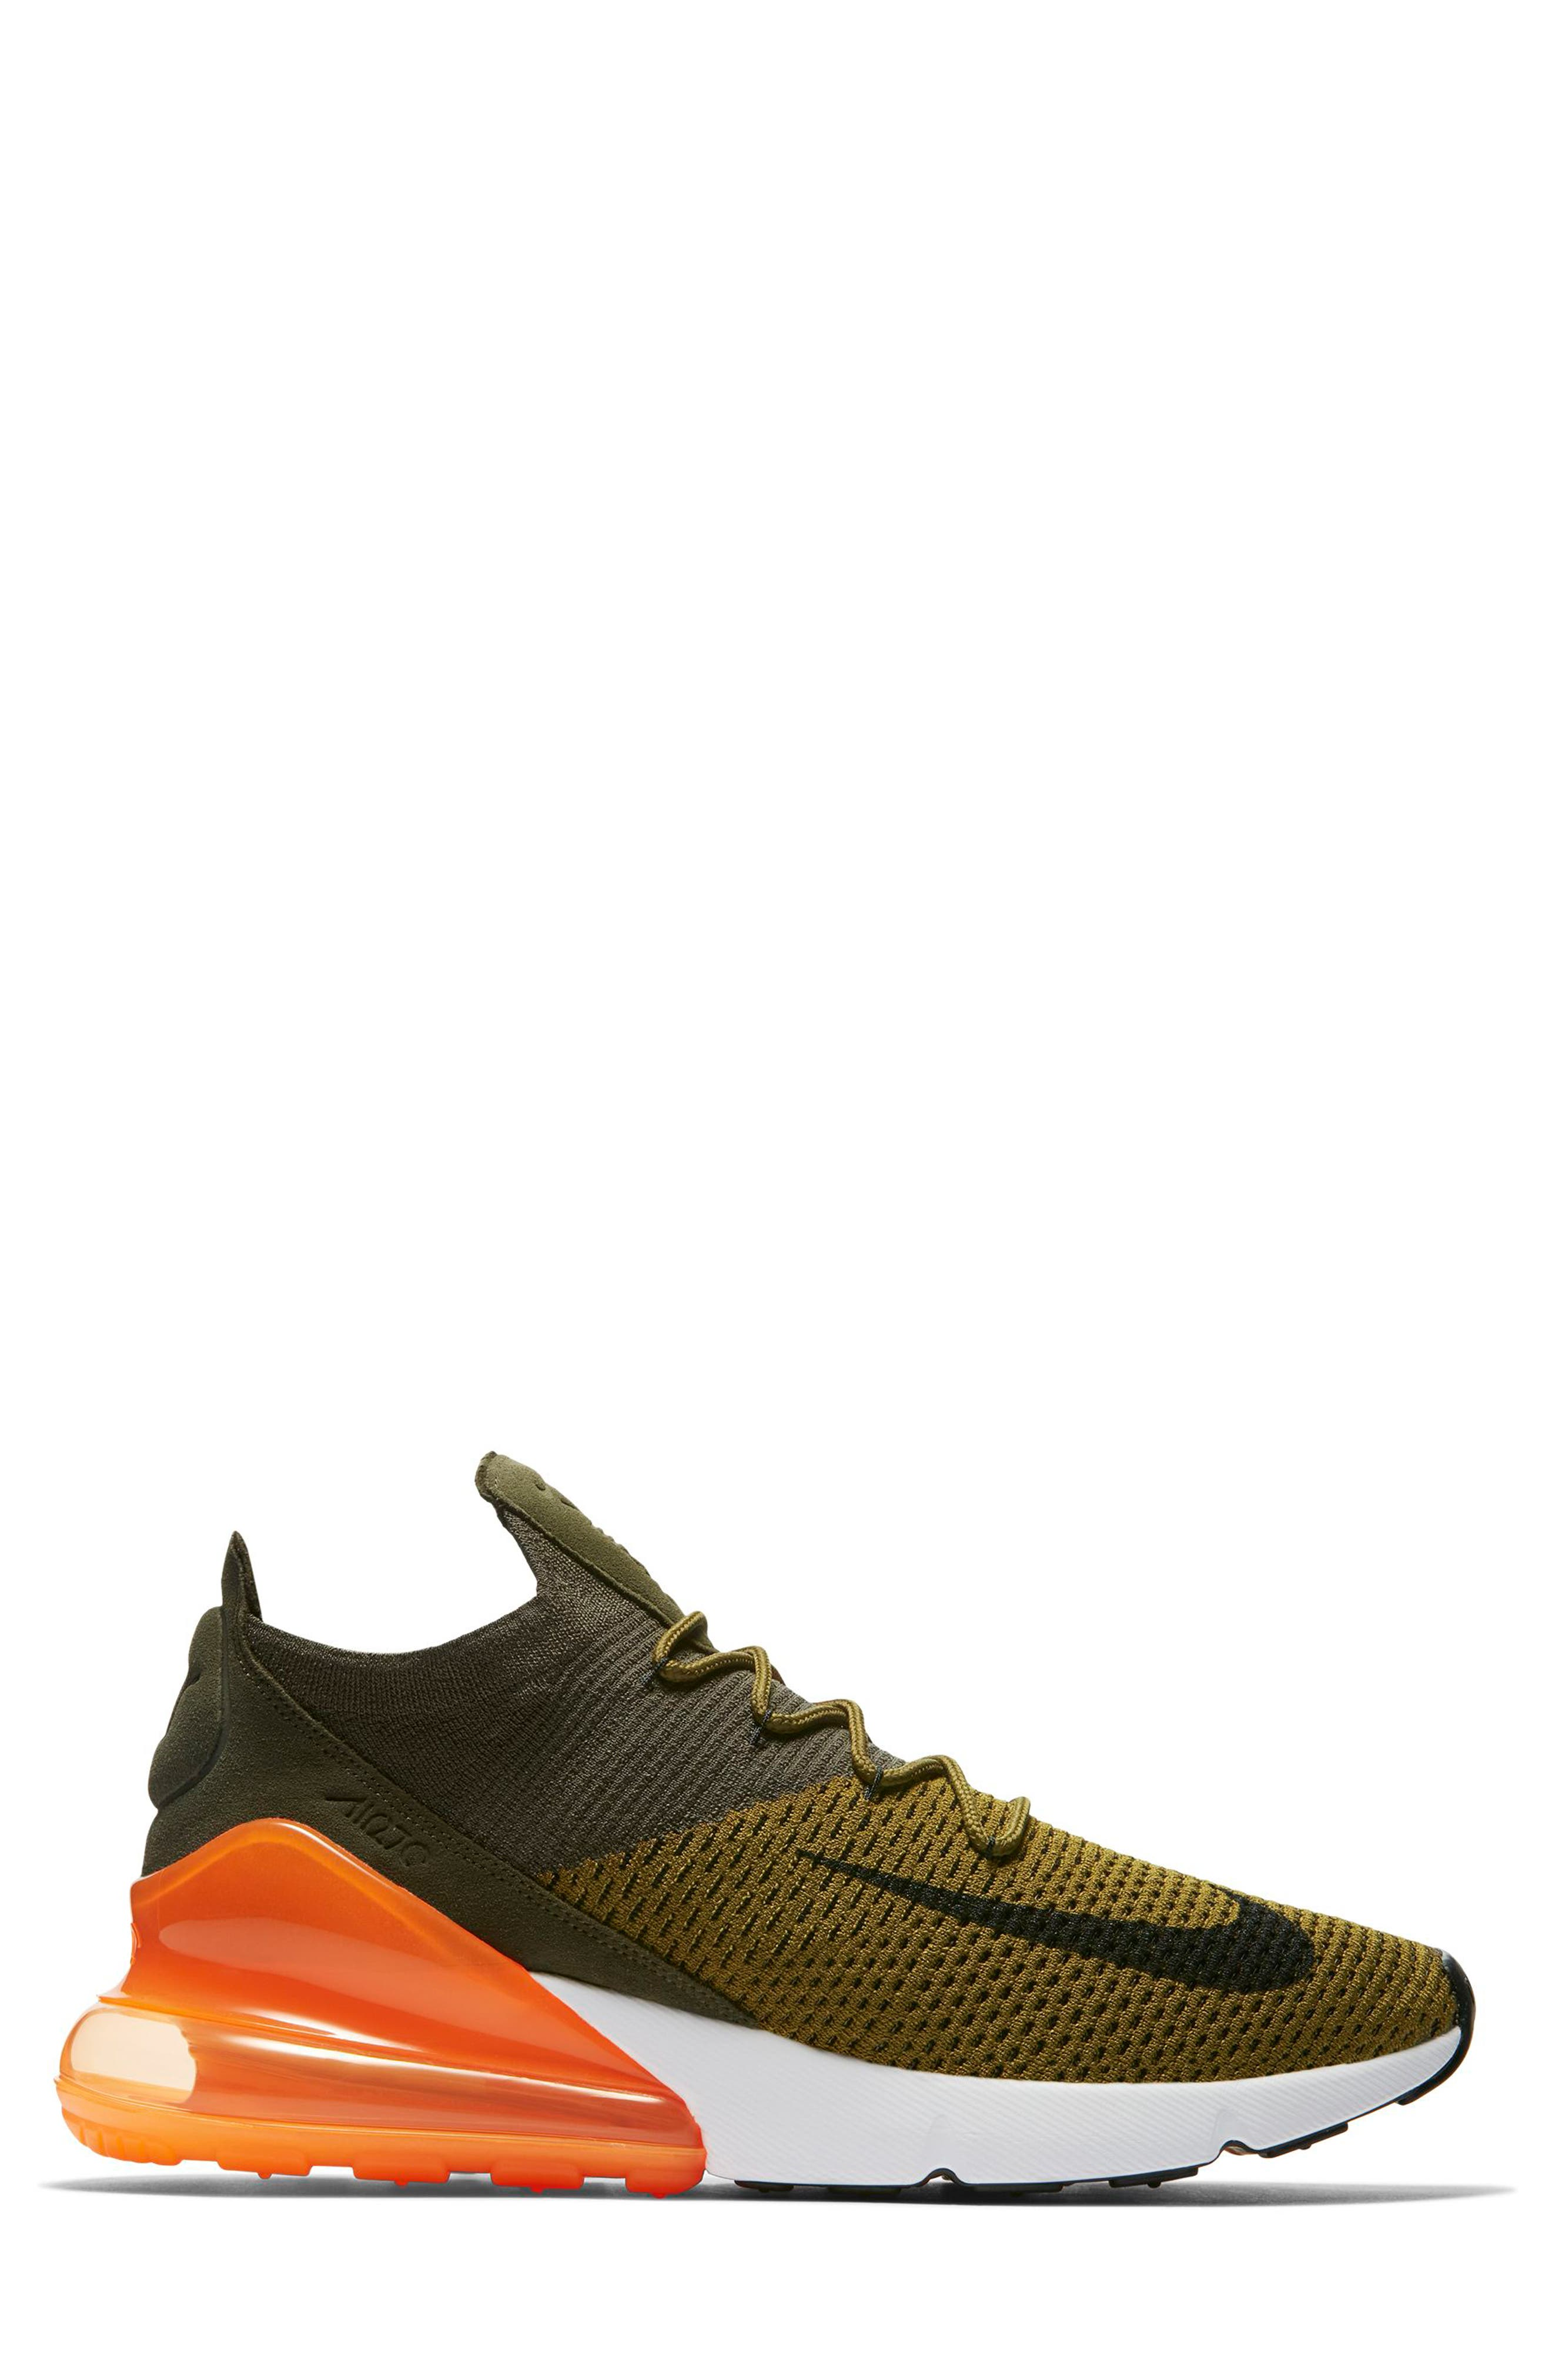 Air Max 270 Flyknit Sneaker,                             Alternate thumbnail 11, color,